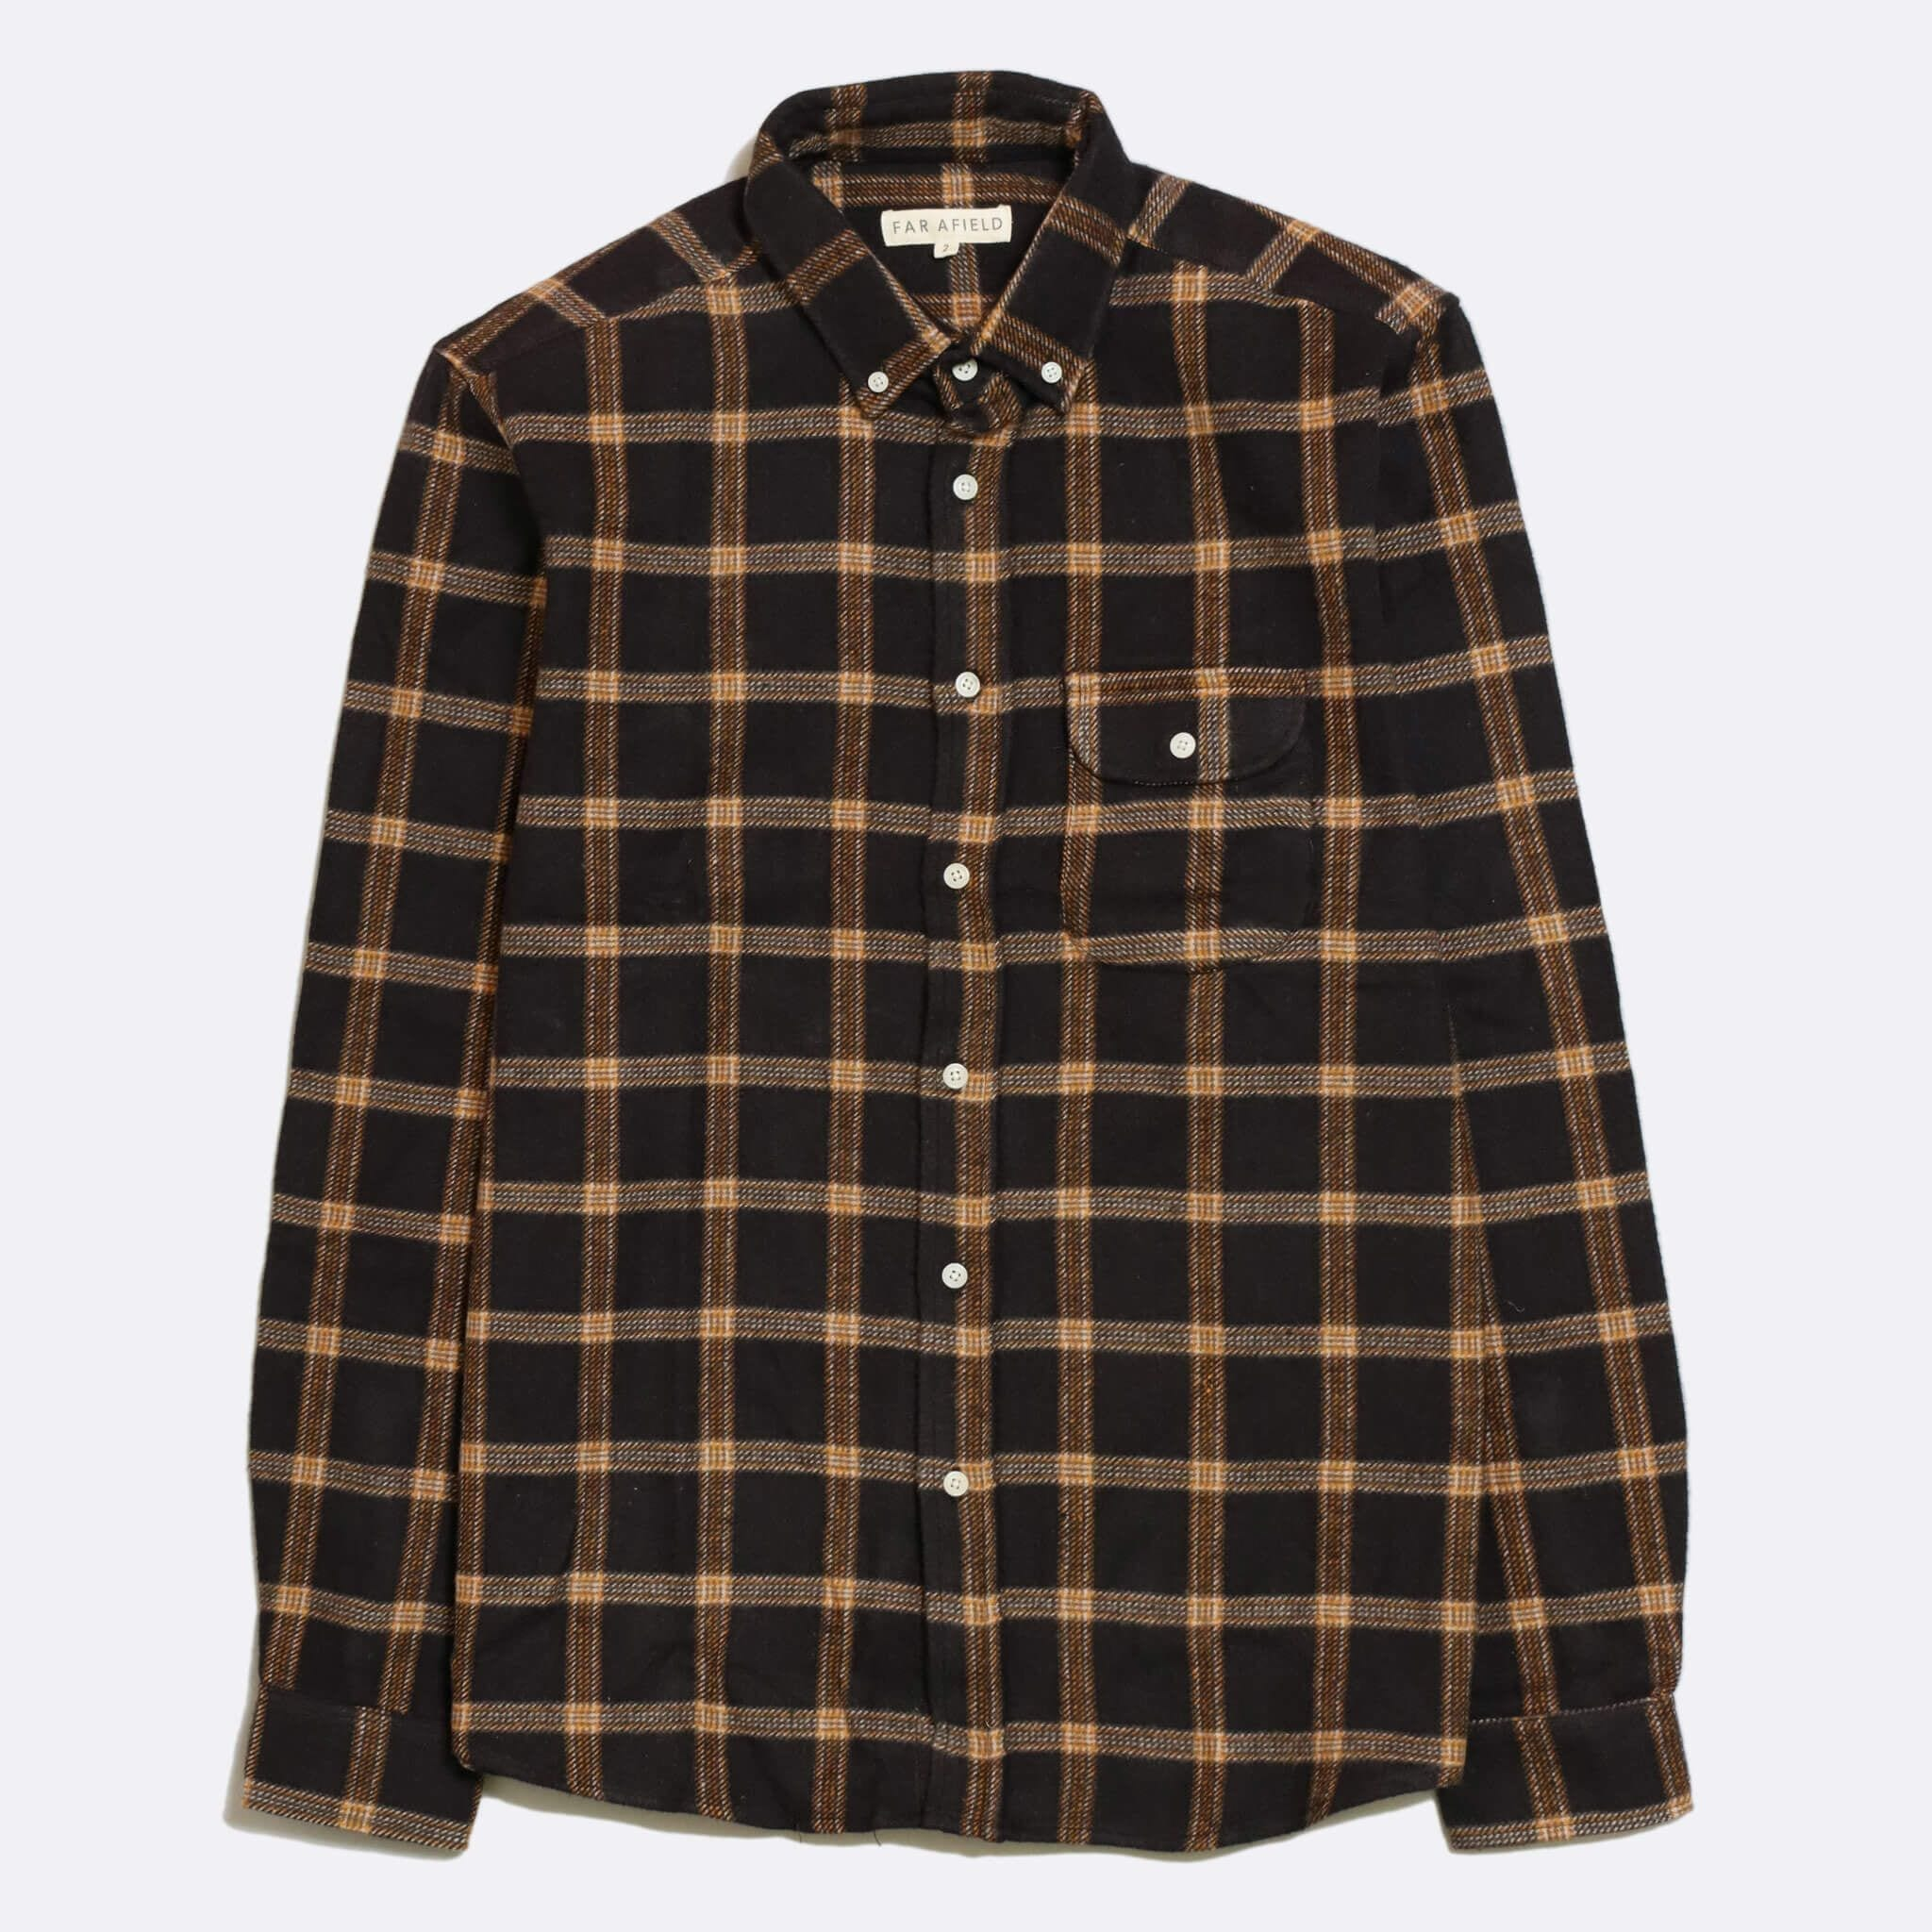 Far Afield Larry Long Sleeve Shirt a Dark Navy BCI Cotton/Cotton Twill Fabric Work Lumberjack Check Casual